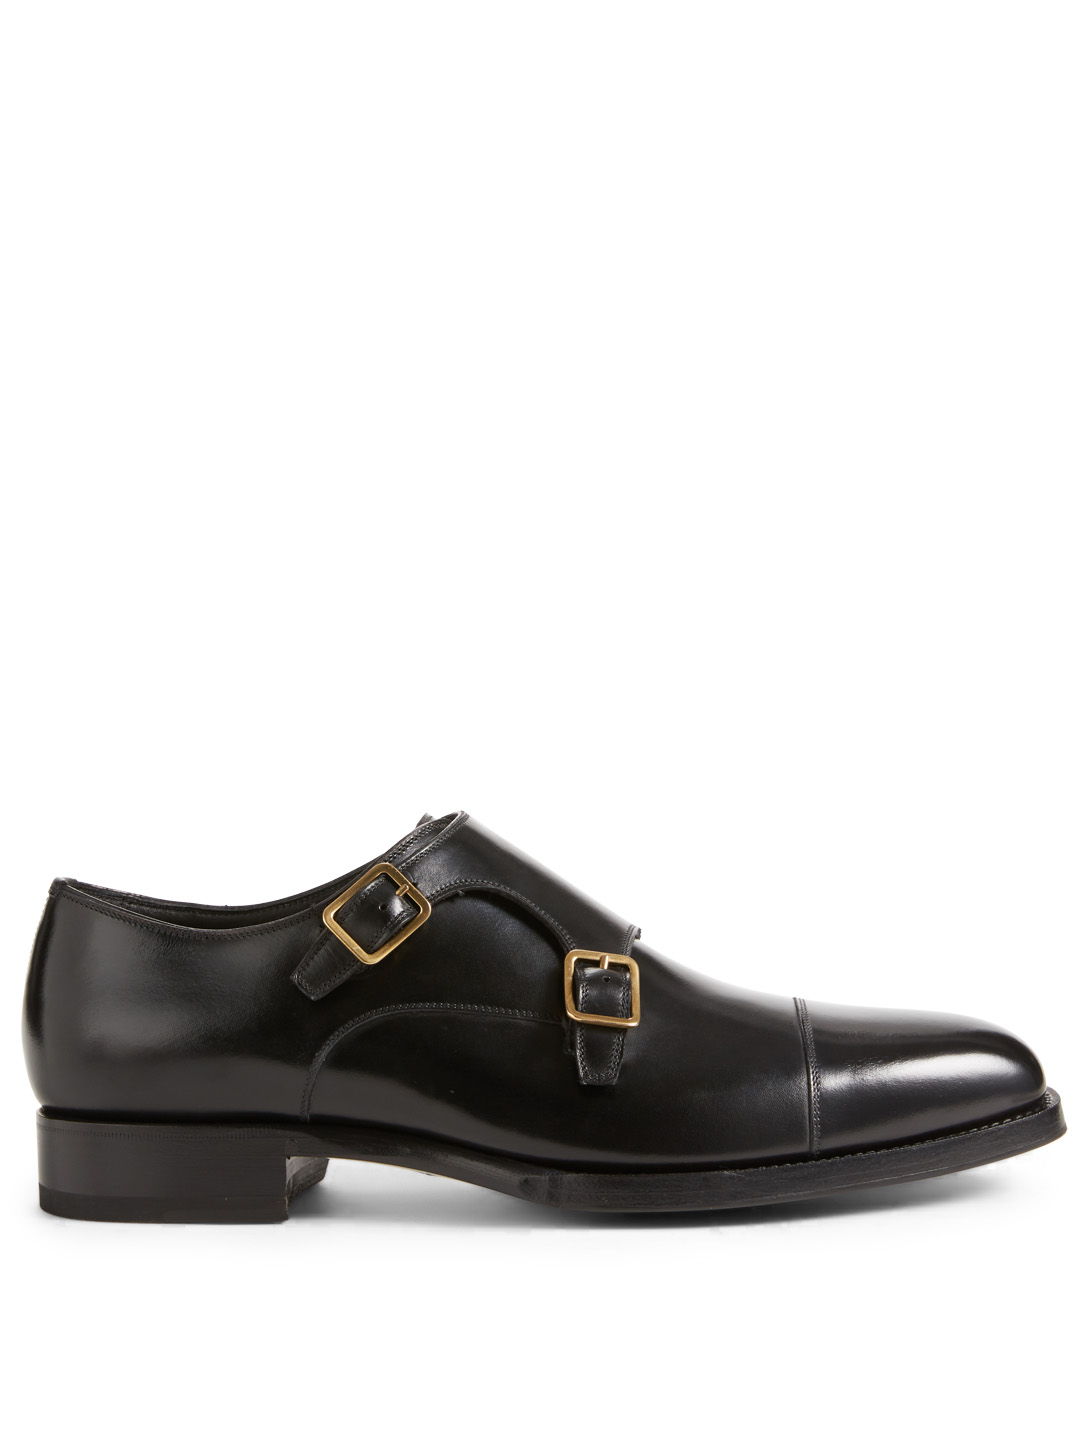 TOM FORD Elkan Leather Double Monk-Strap Shoes Men's Black